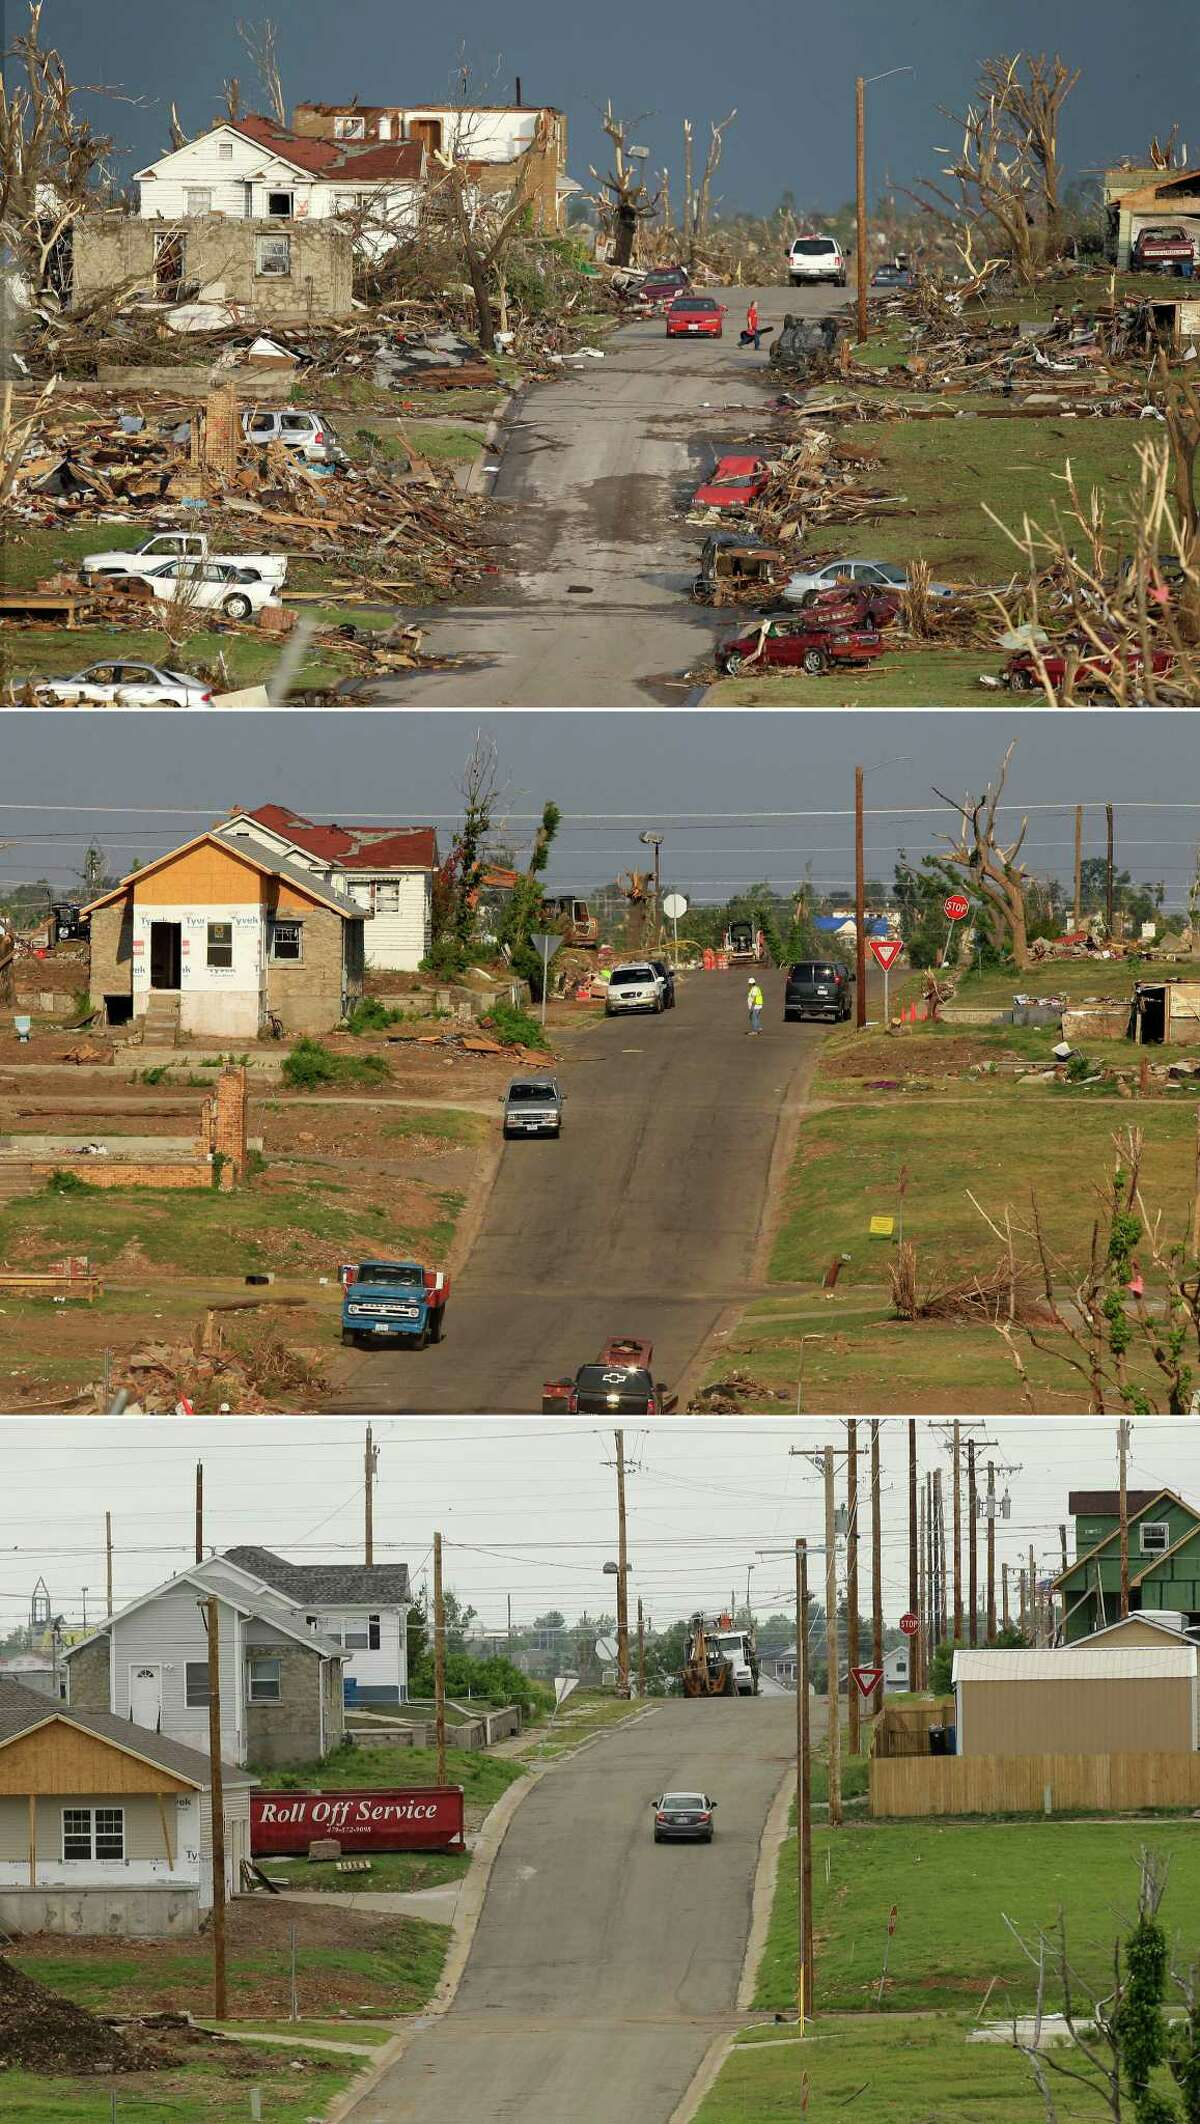 This three-photo combo shows a scene taken on May 23, 2011, top, July 21, 2011, center, and May 7, 2012, bottom, shows progress made in Joplin, Mo. in the year after an EF-5 tornado destroyed a large swath of the city and killed 161 people.